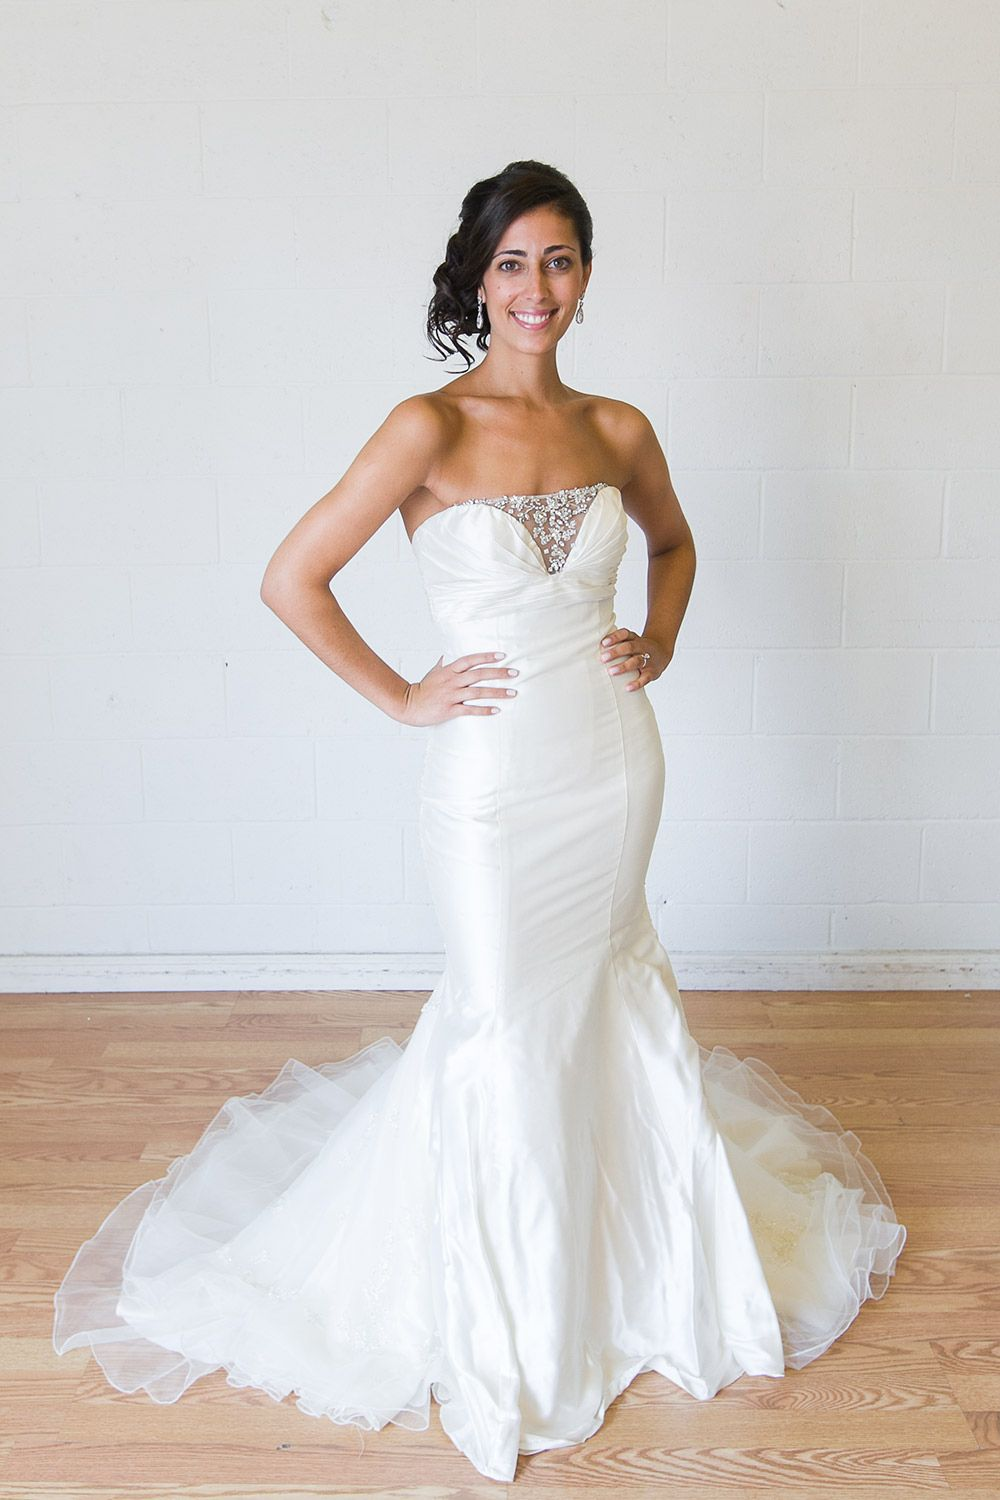 Rent Dresses For Wedding Plus Size Dresses For Wedding Guests - Rent Dress For Wedding Guest